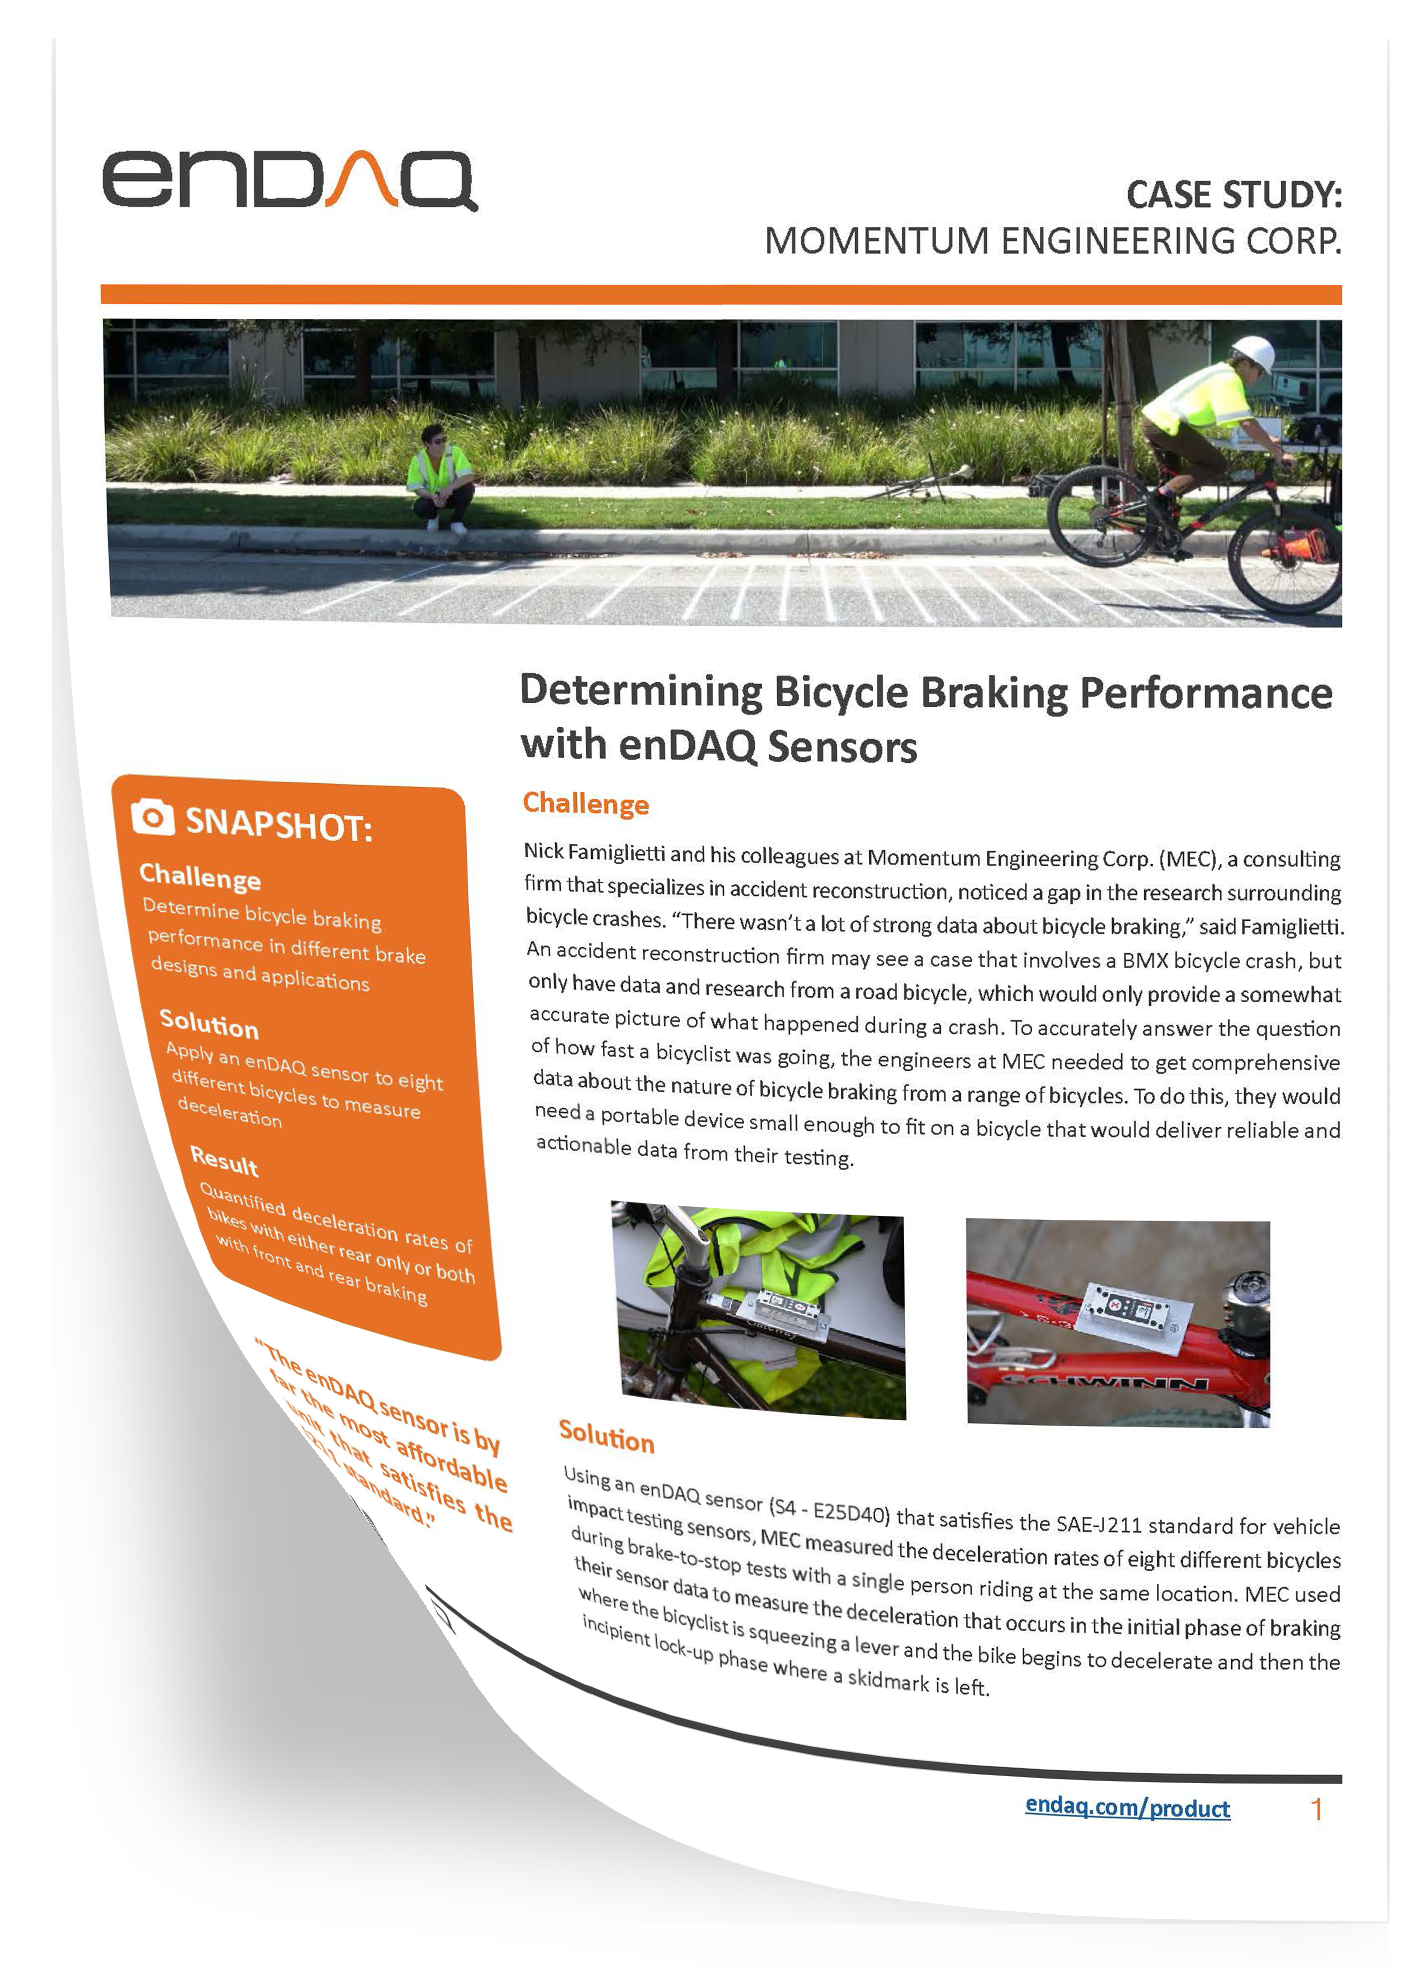 enDAQ Momentum Engineering Corp. Bicycle Brake Case Study